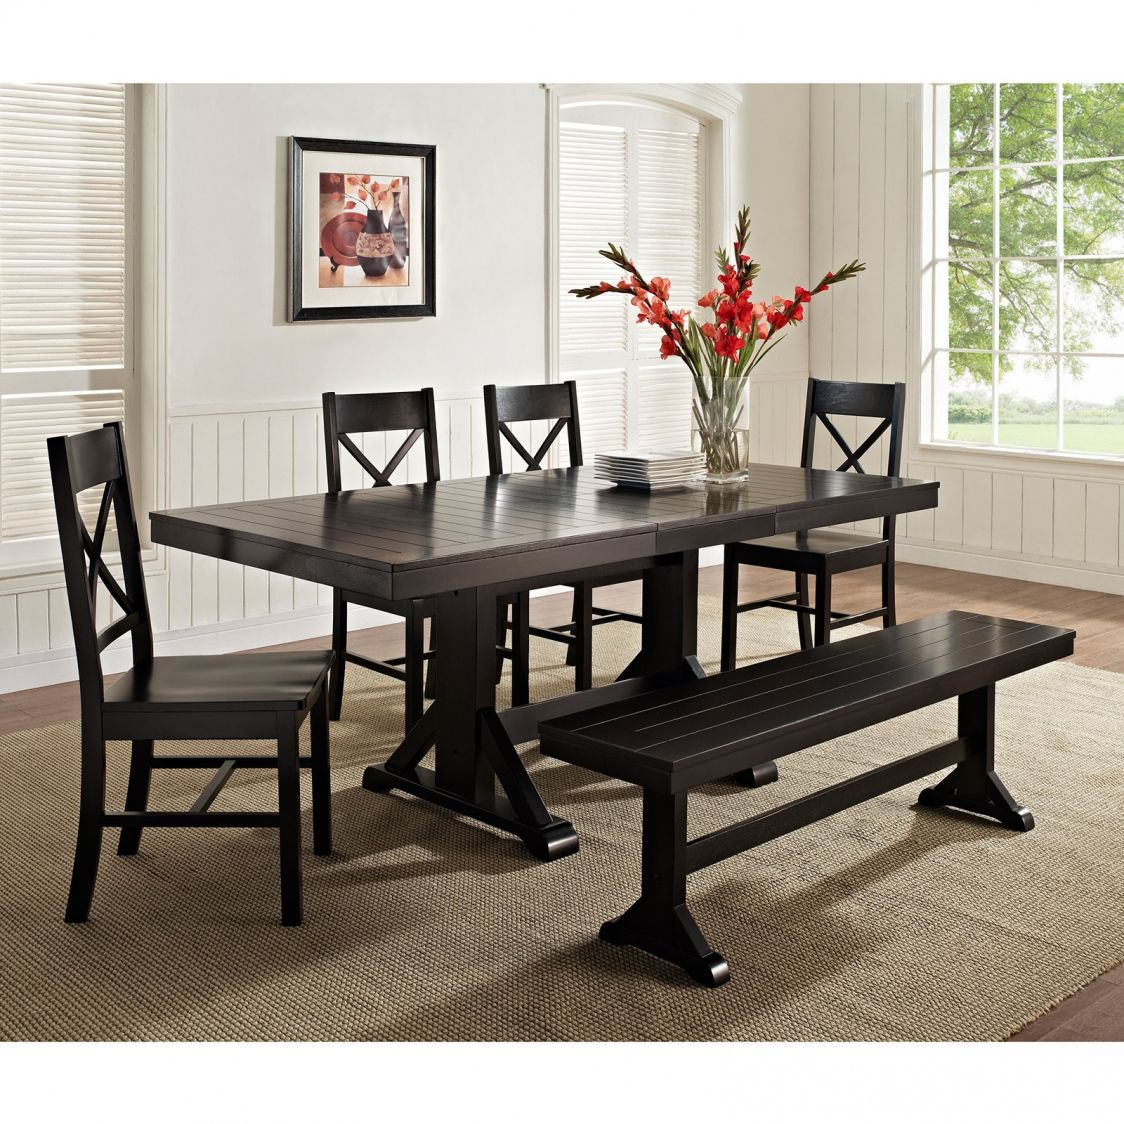 Black Dining Room Table with Bench Cool Rustic Furniture Check